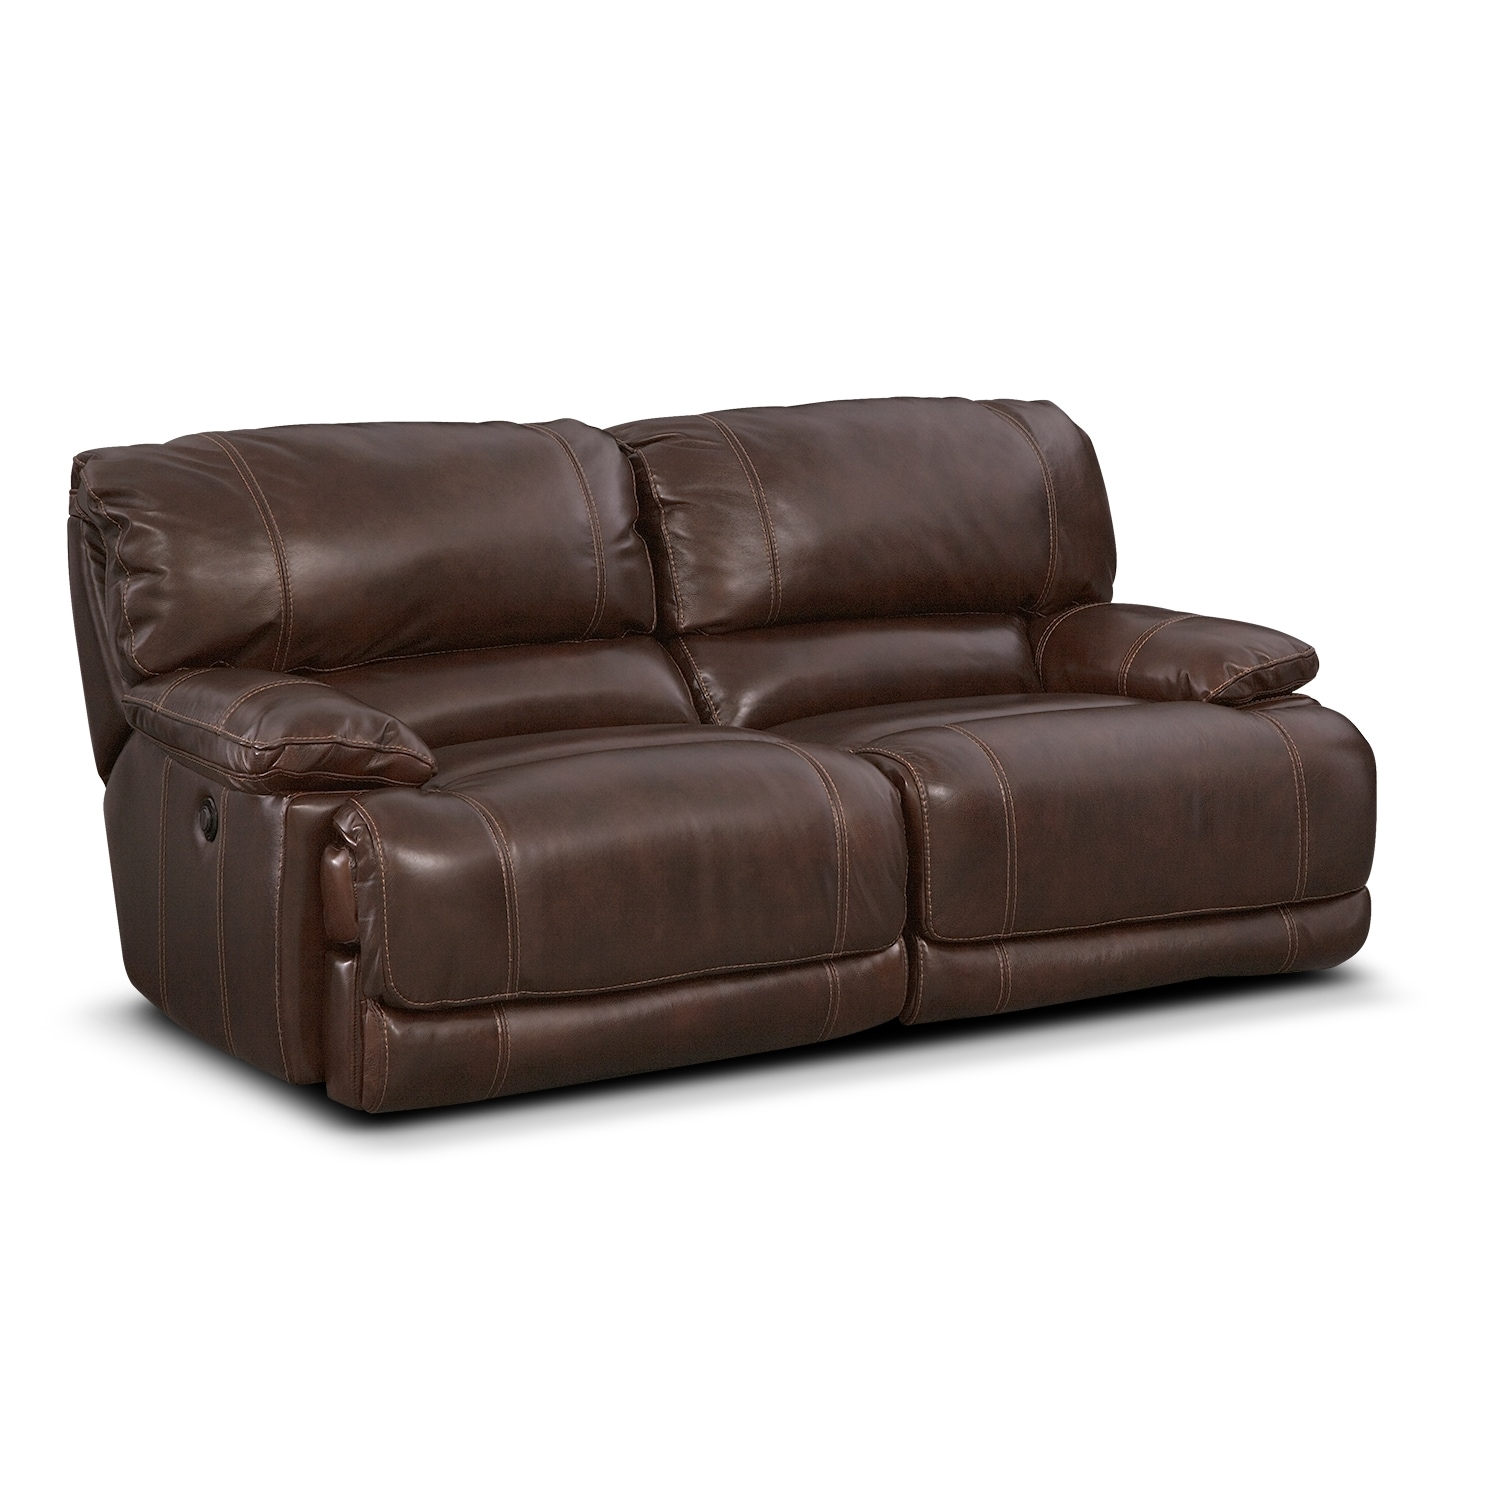 St. Malo Power Reclining Sofa - Brown